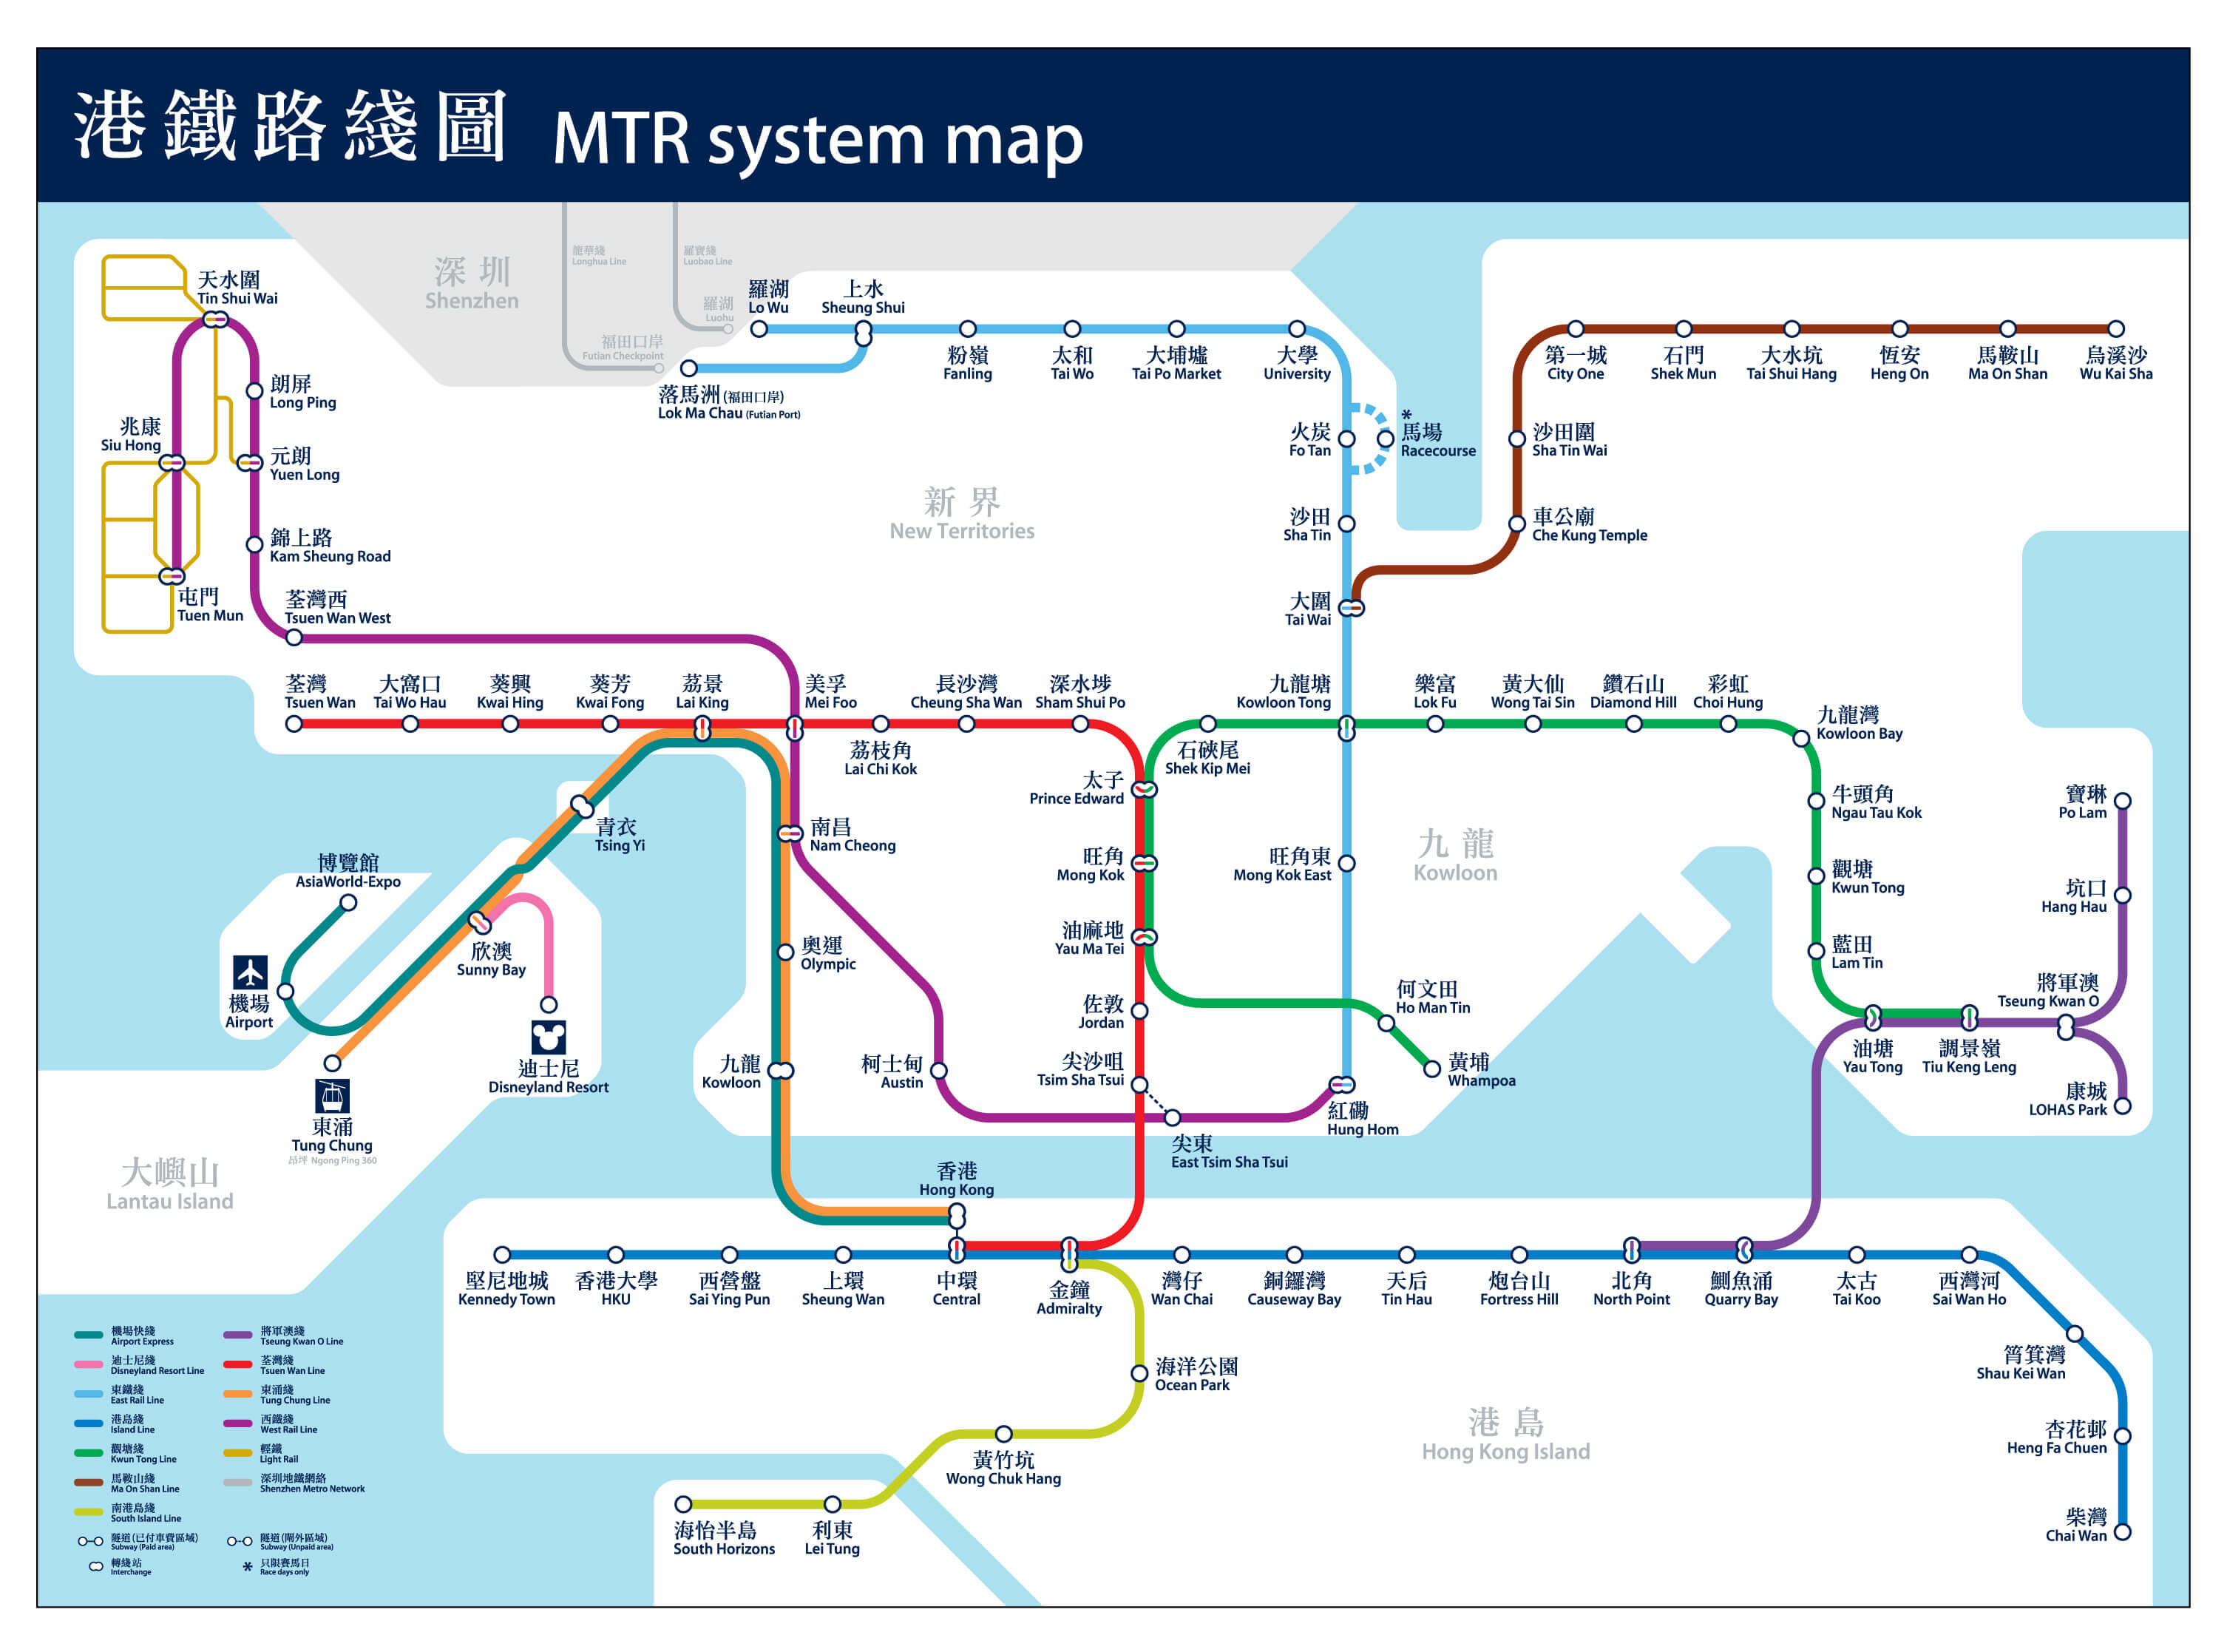 Hong Kong Map, Hong Kong Tourist Map, Hong Kong Macau Map